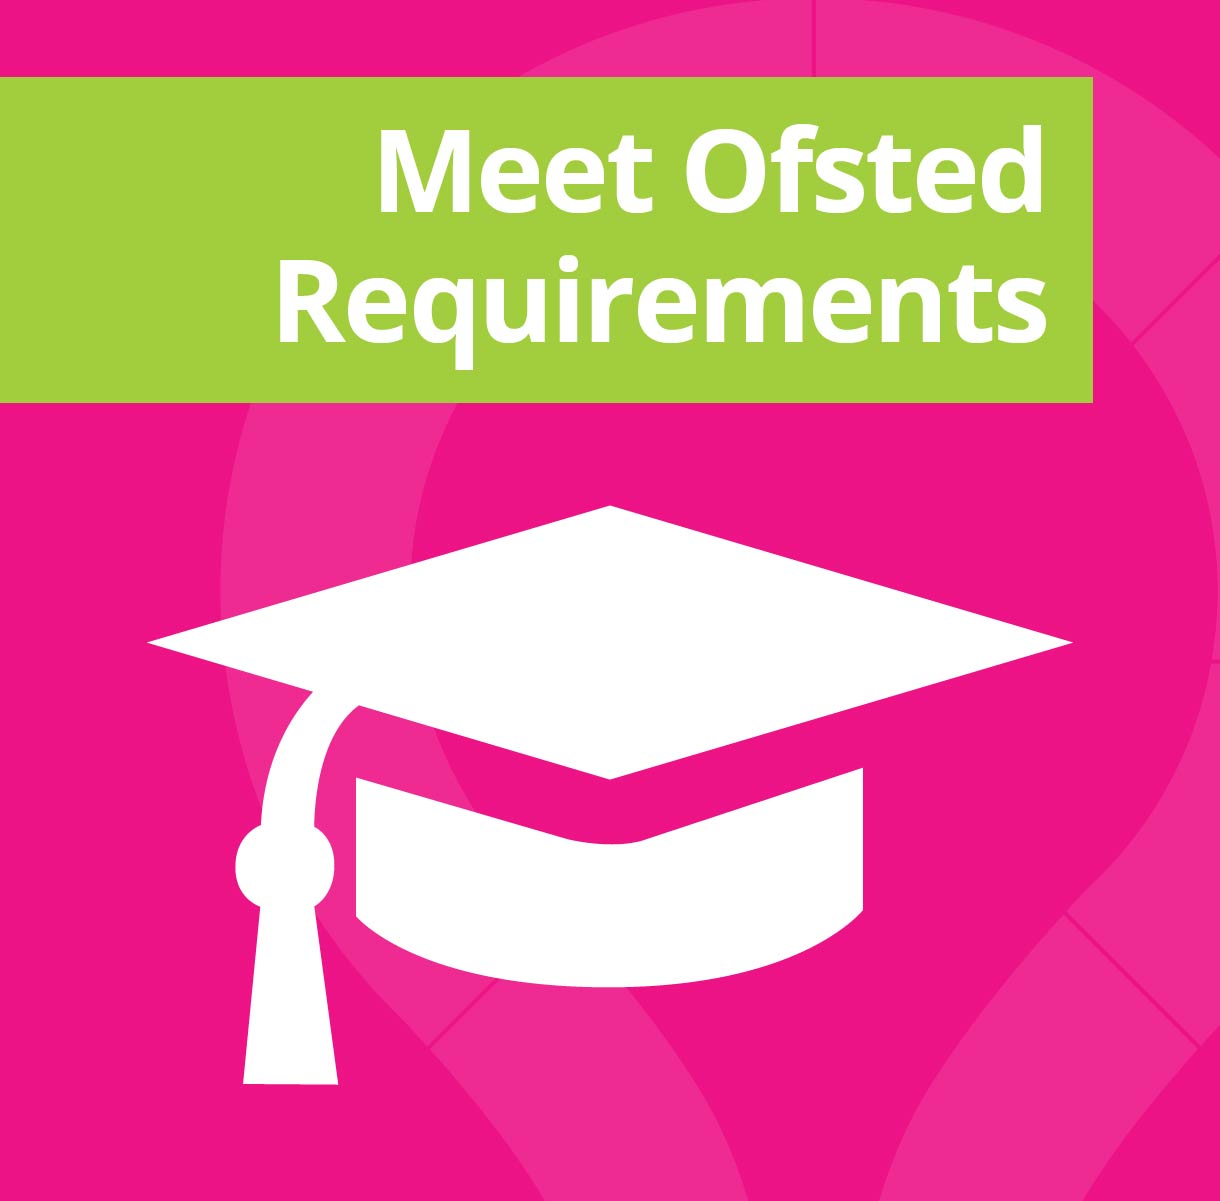 Meet Ofsted requirements